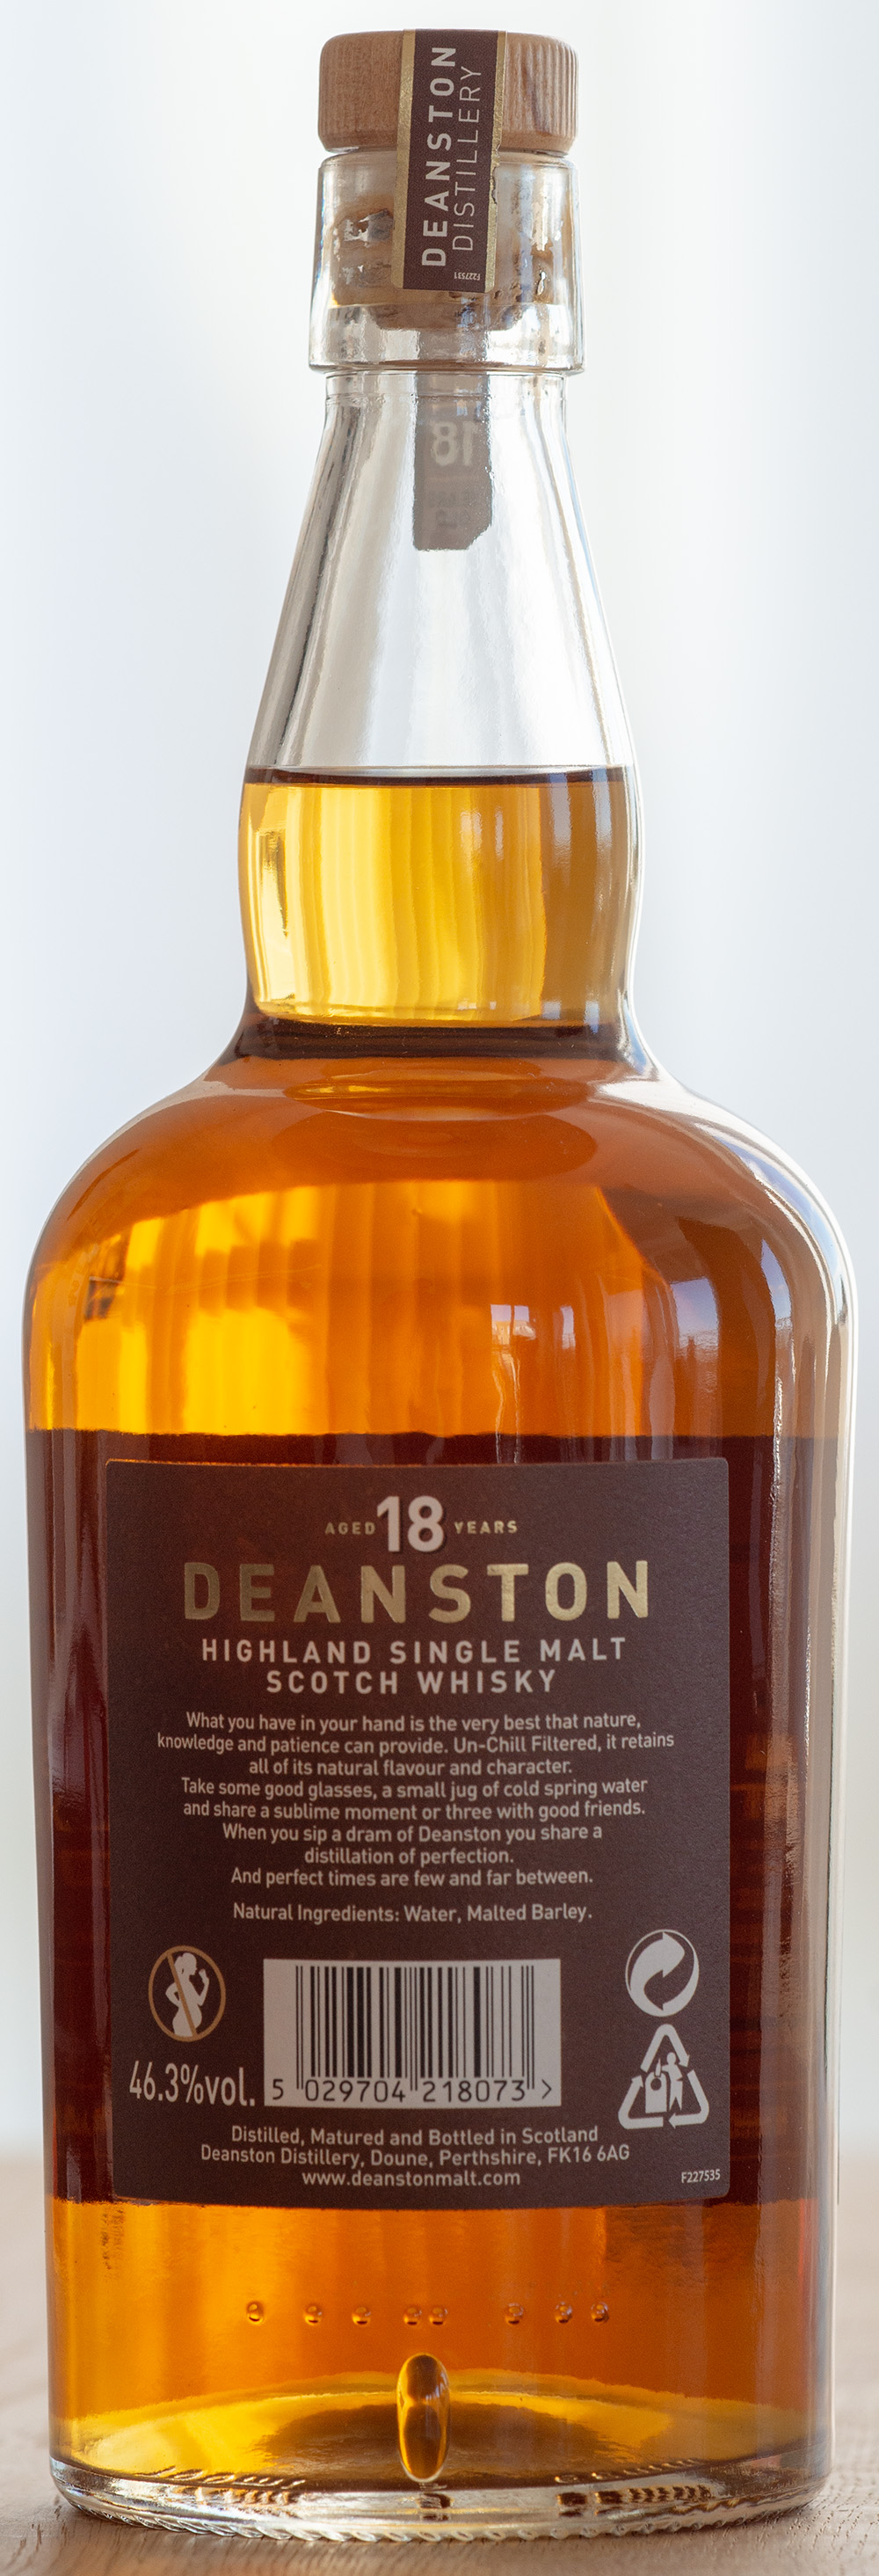 Billede: DSC_6623 - Deanston 18 - bottle back.jpg